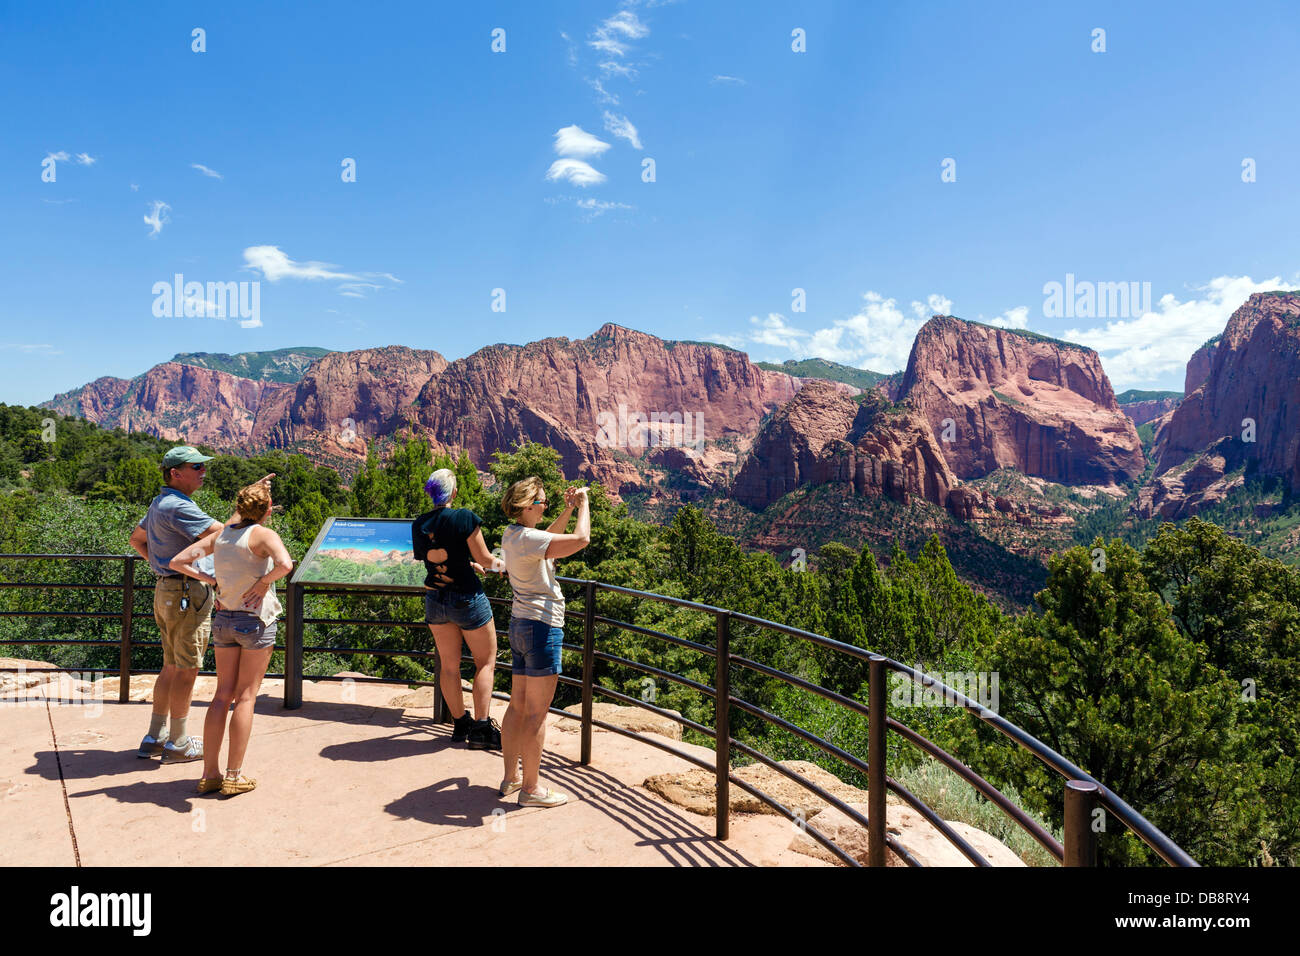 Tourists at an overlook in Kolob Canyons section of Zion National Park, Utah, USA Stock Photo